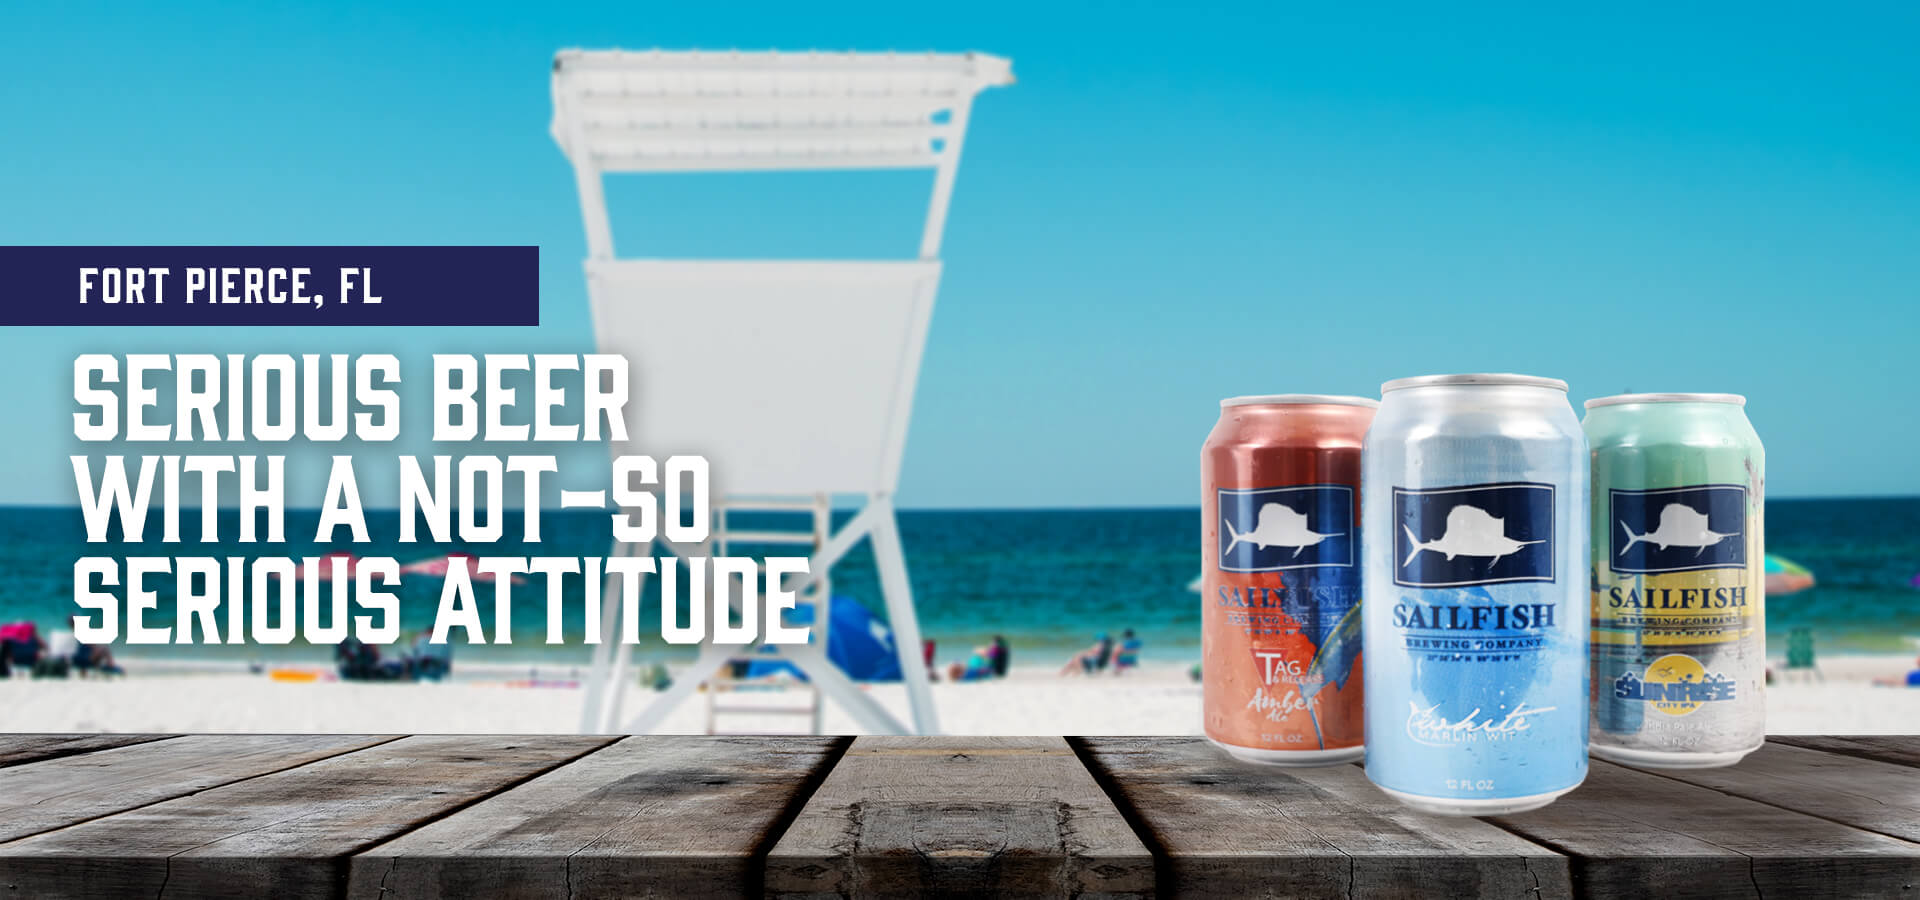 Sailfish Brewery Cans in Fort Pierce